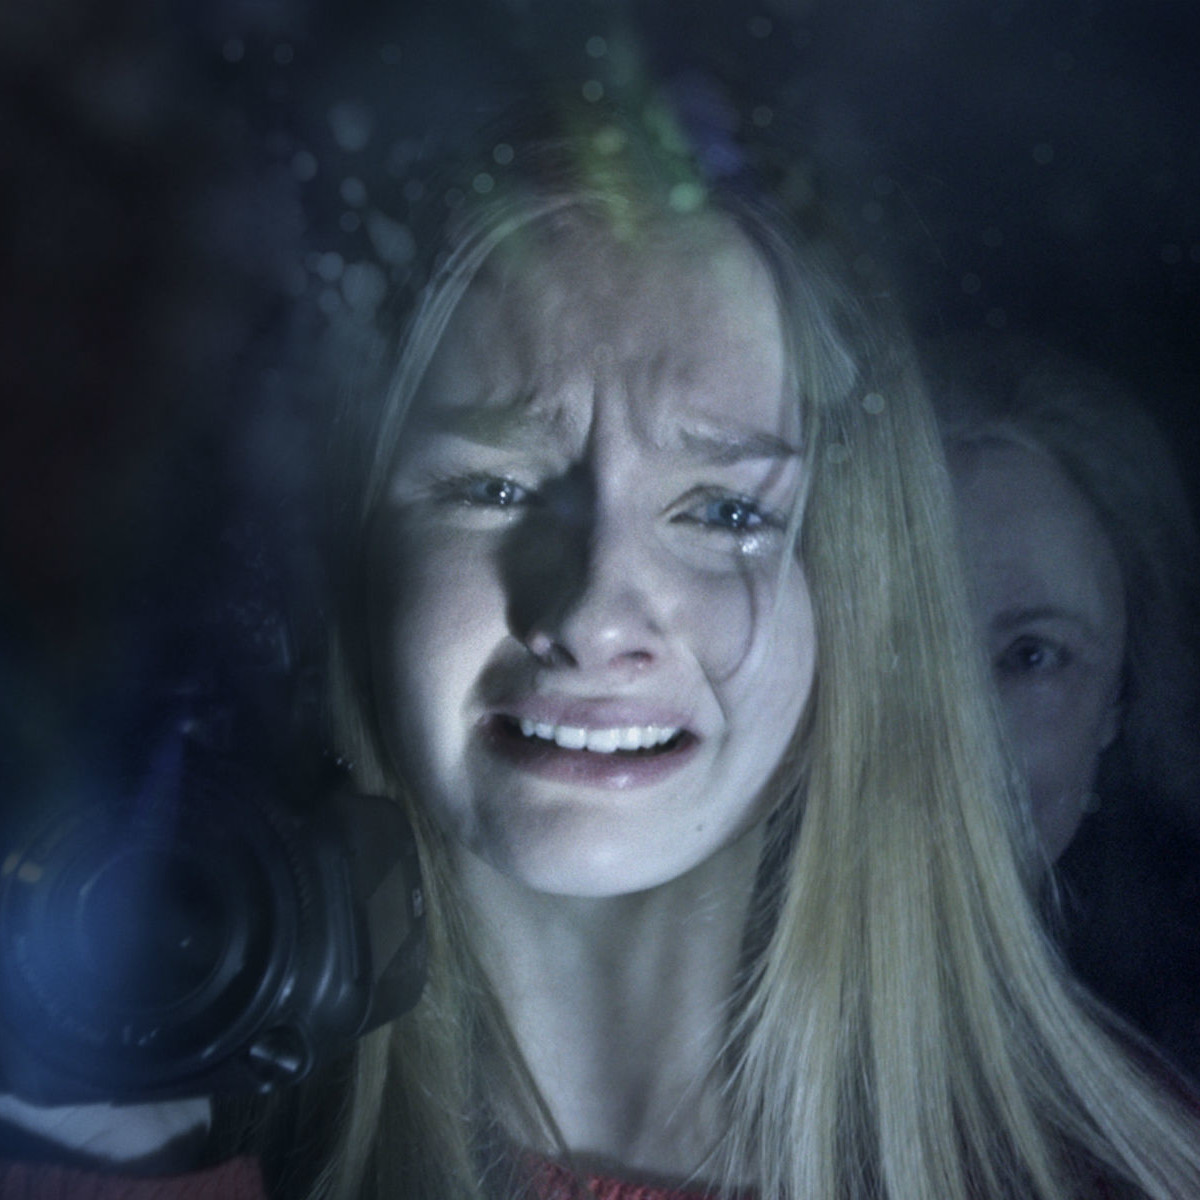 Olivia DeJonge and Deanna Dunagan in The Visit